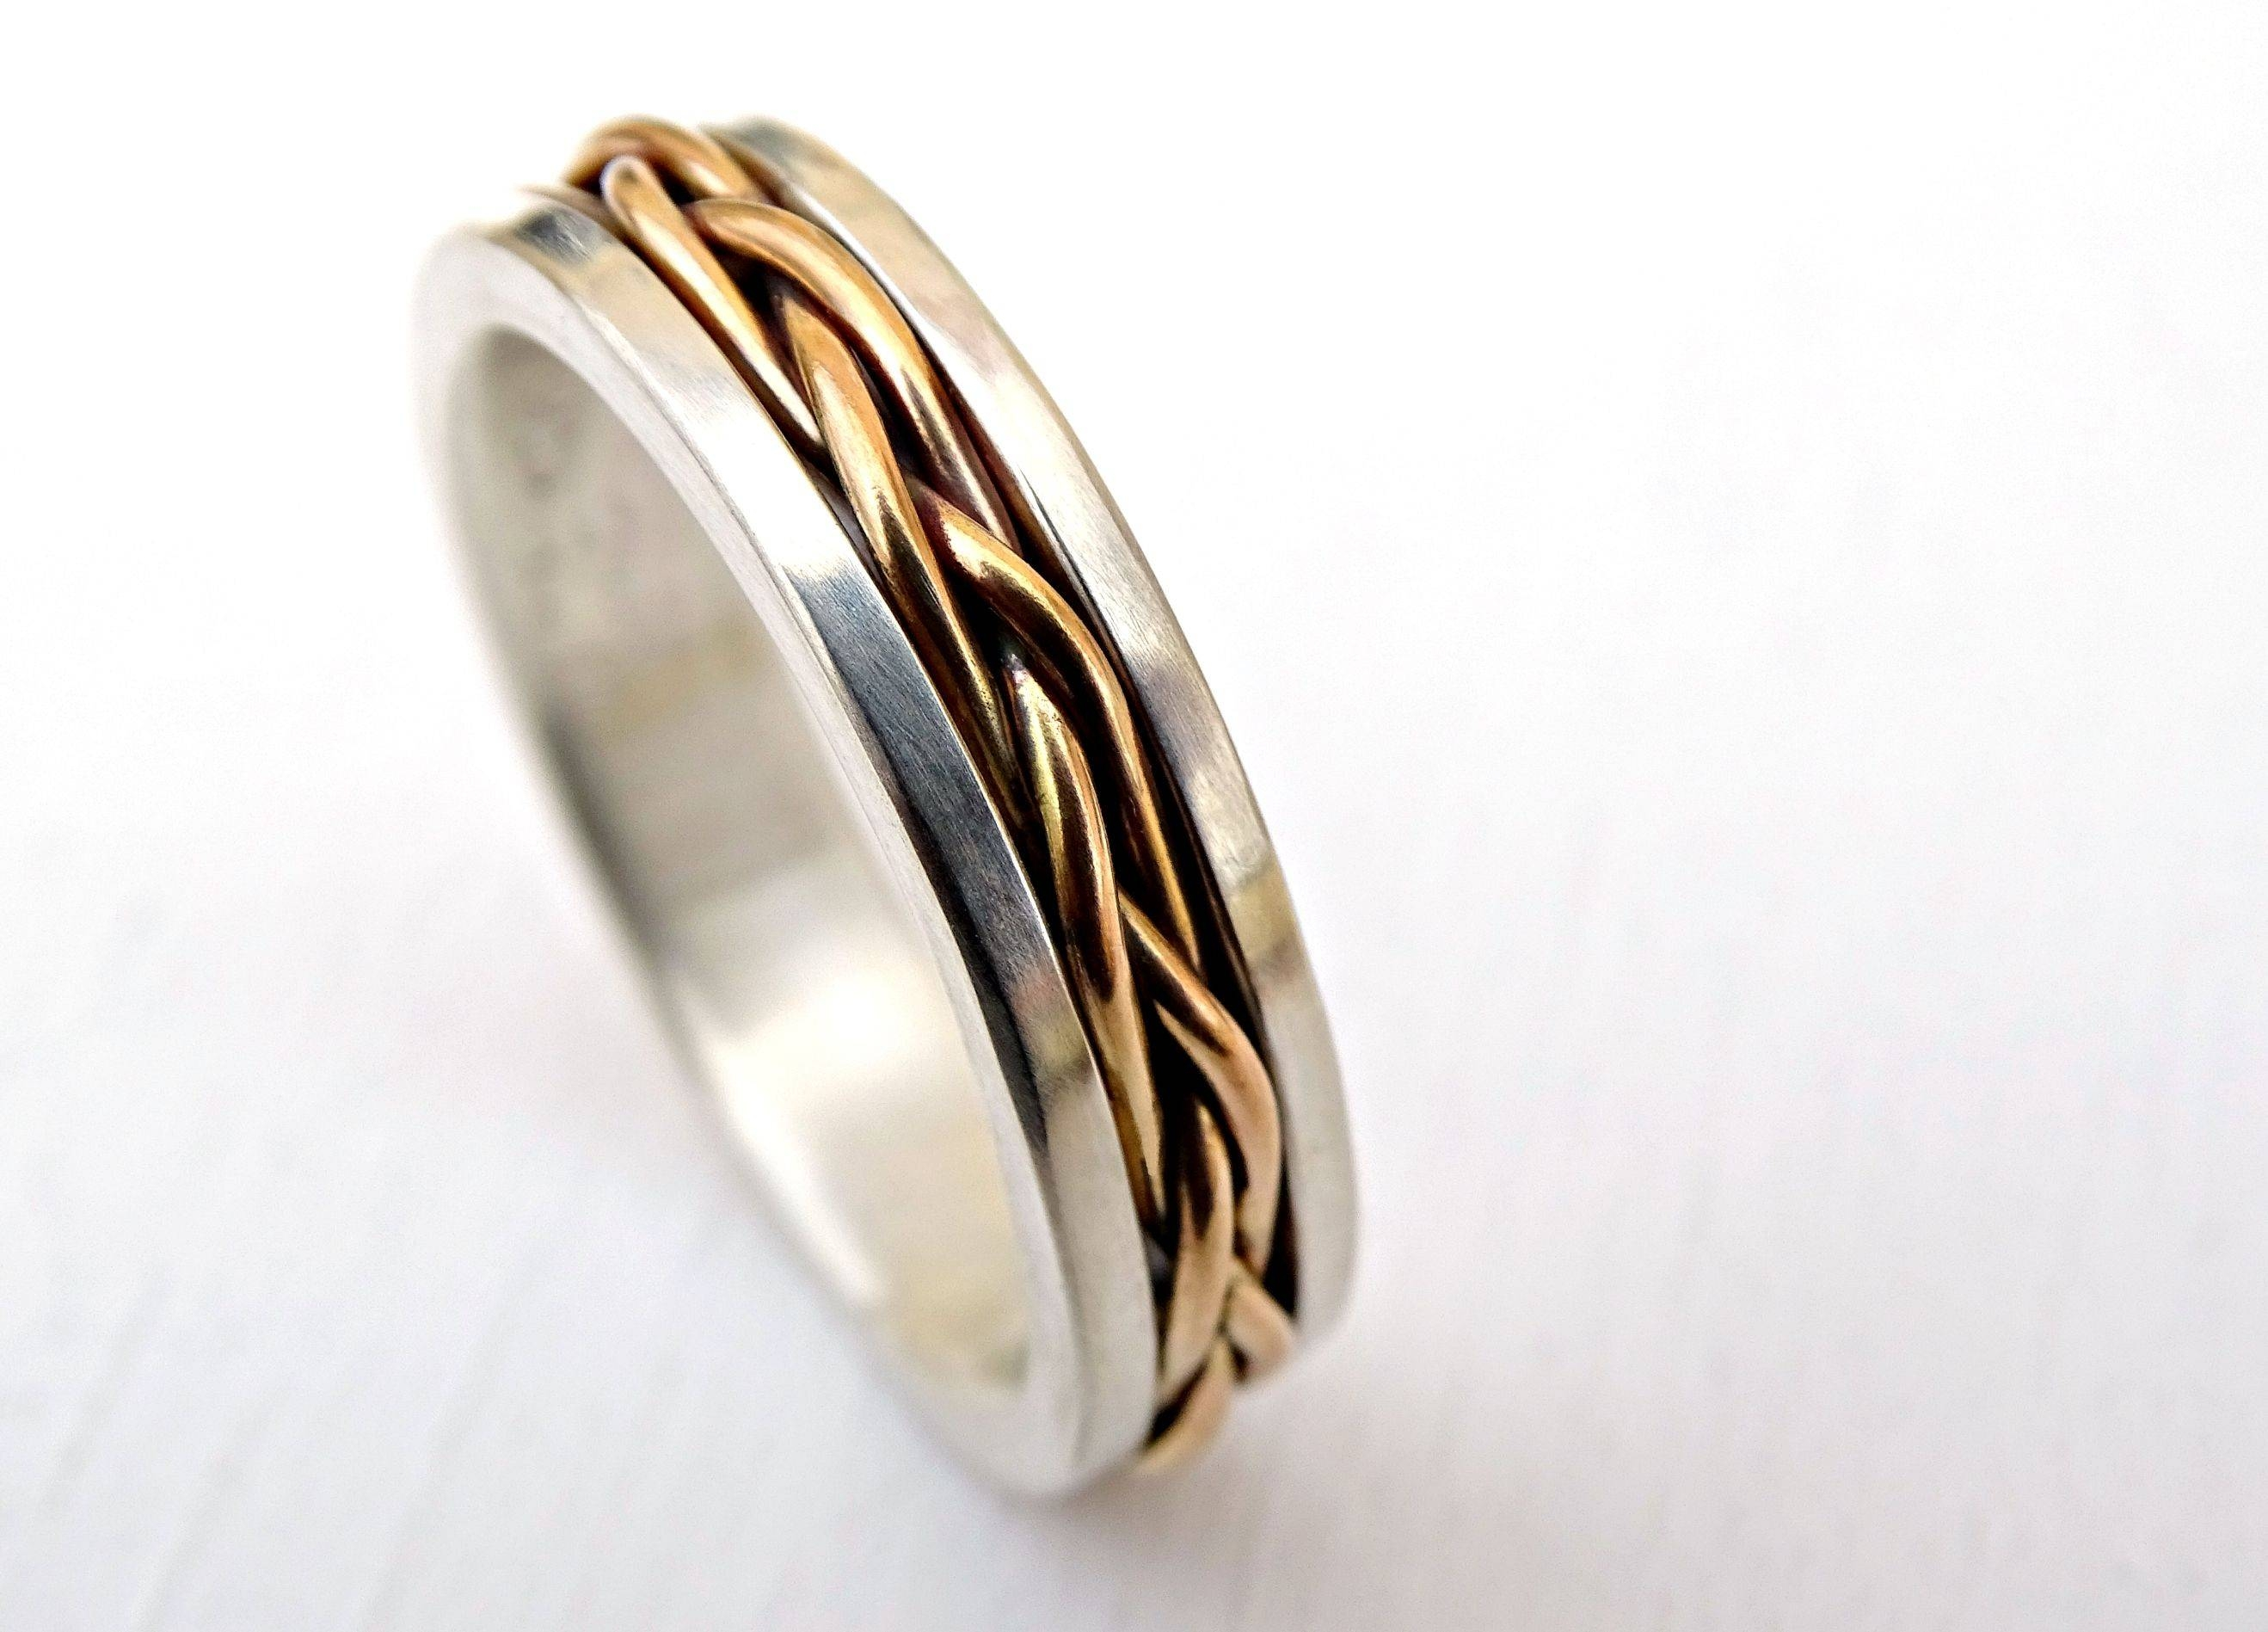 Buy A Custom Made Celtic Wedding Band Men, Gold Braided Wedding Intended For Braided Wedding Bands (View 8 of 15)